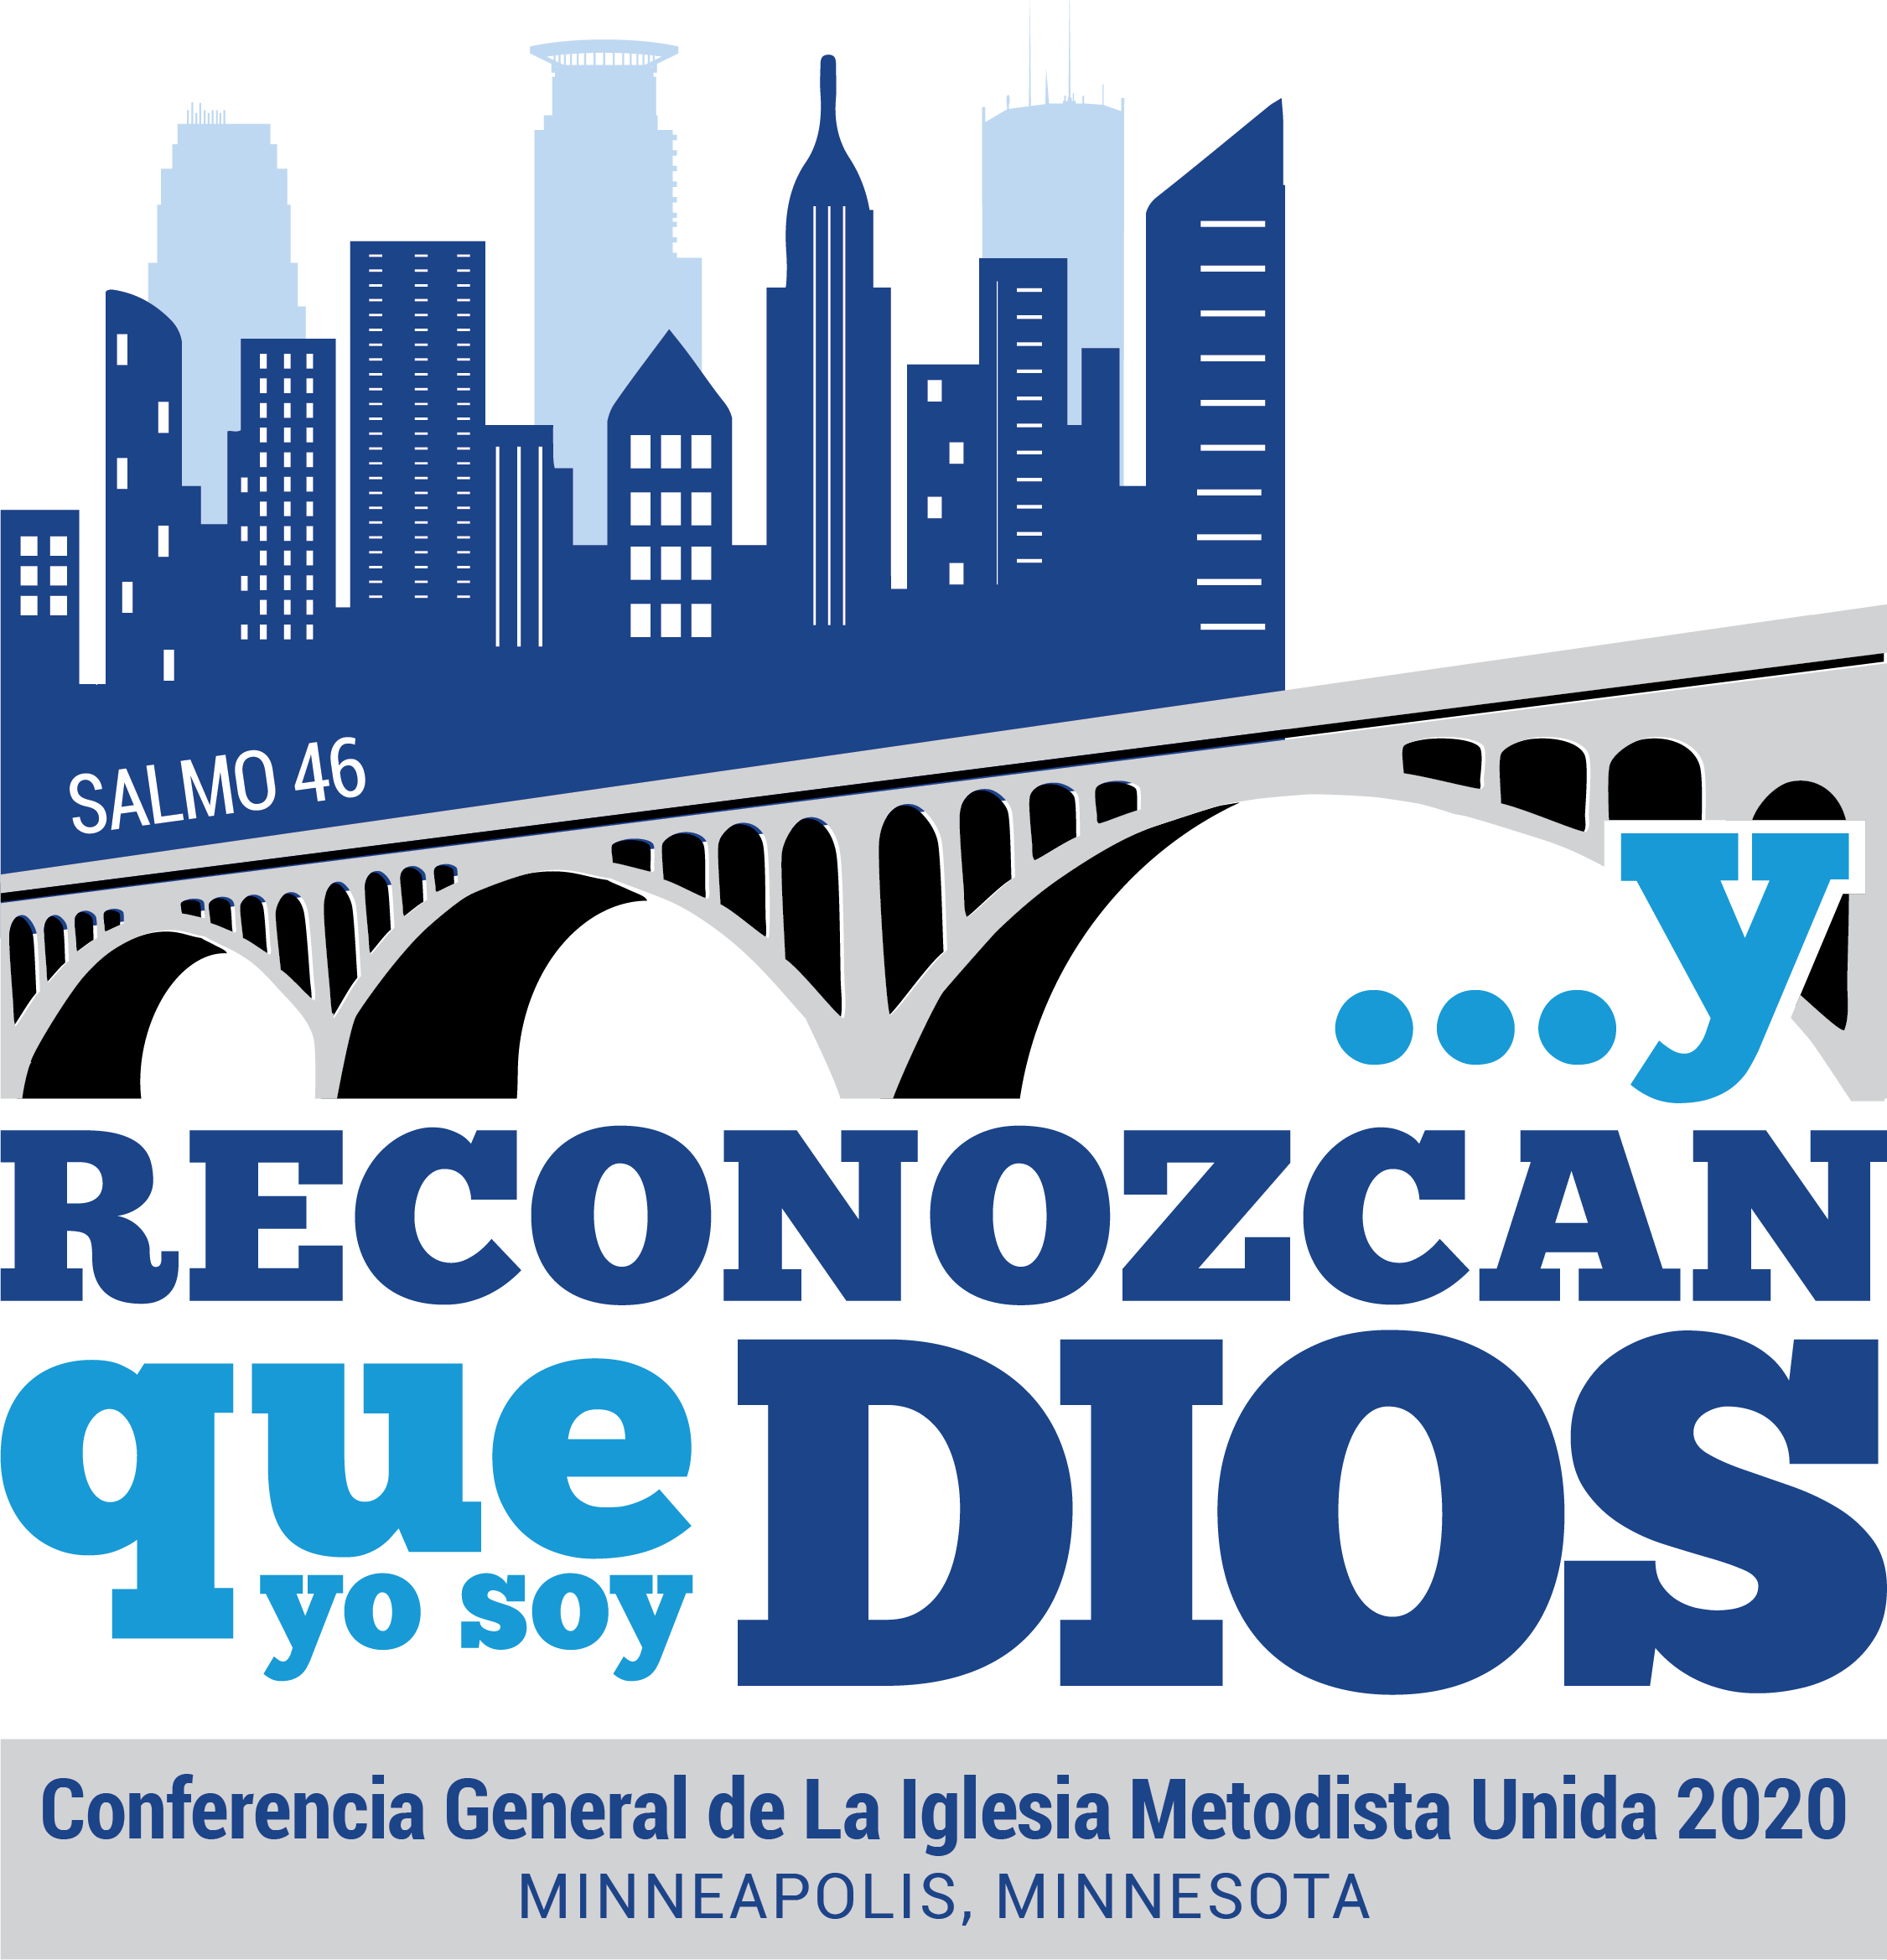 The official logo of General Conference 2020